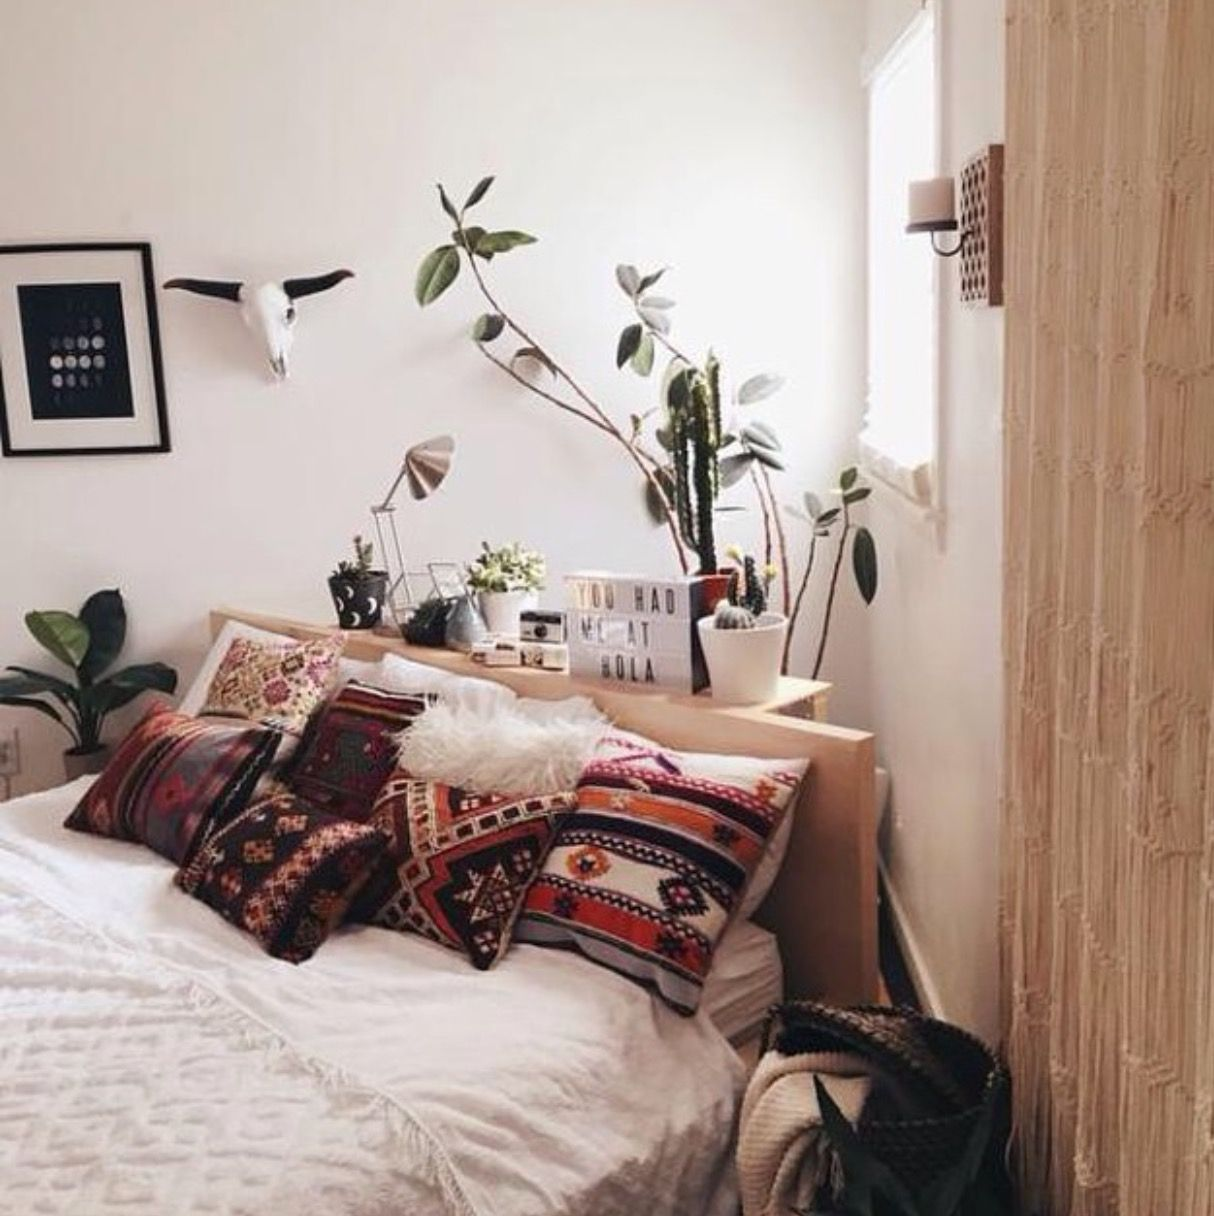 Plants in the bedroom, diagonal bed placement (not a fan) - My room ...